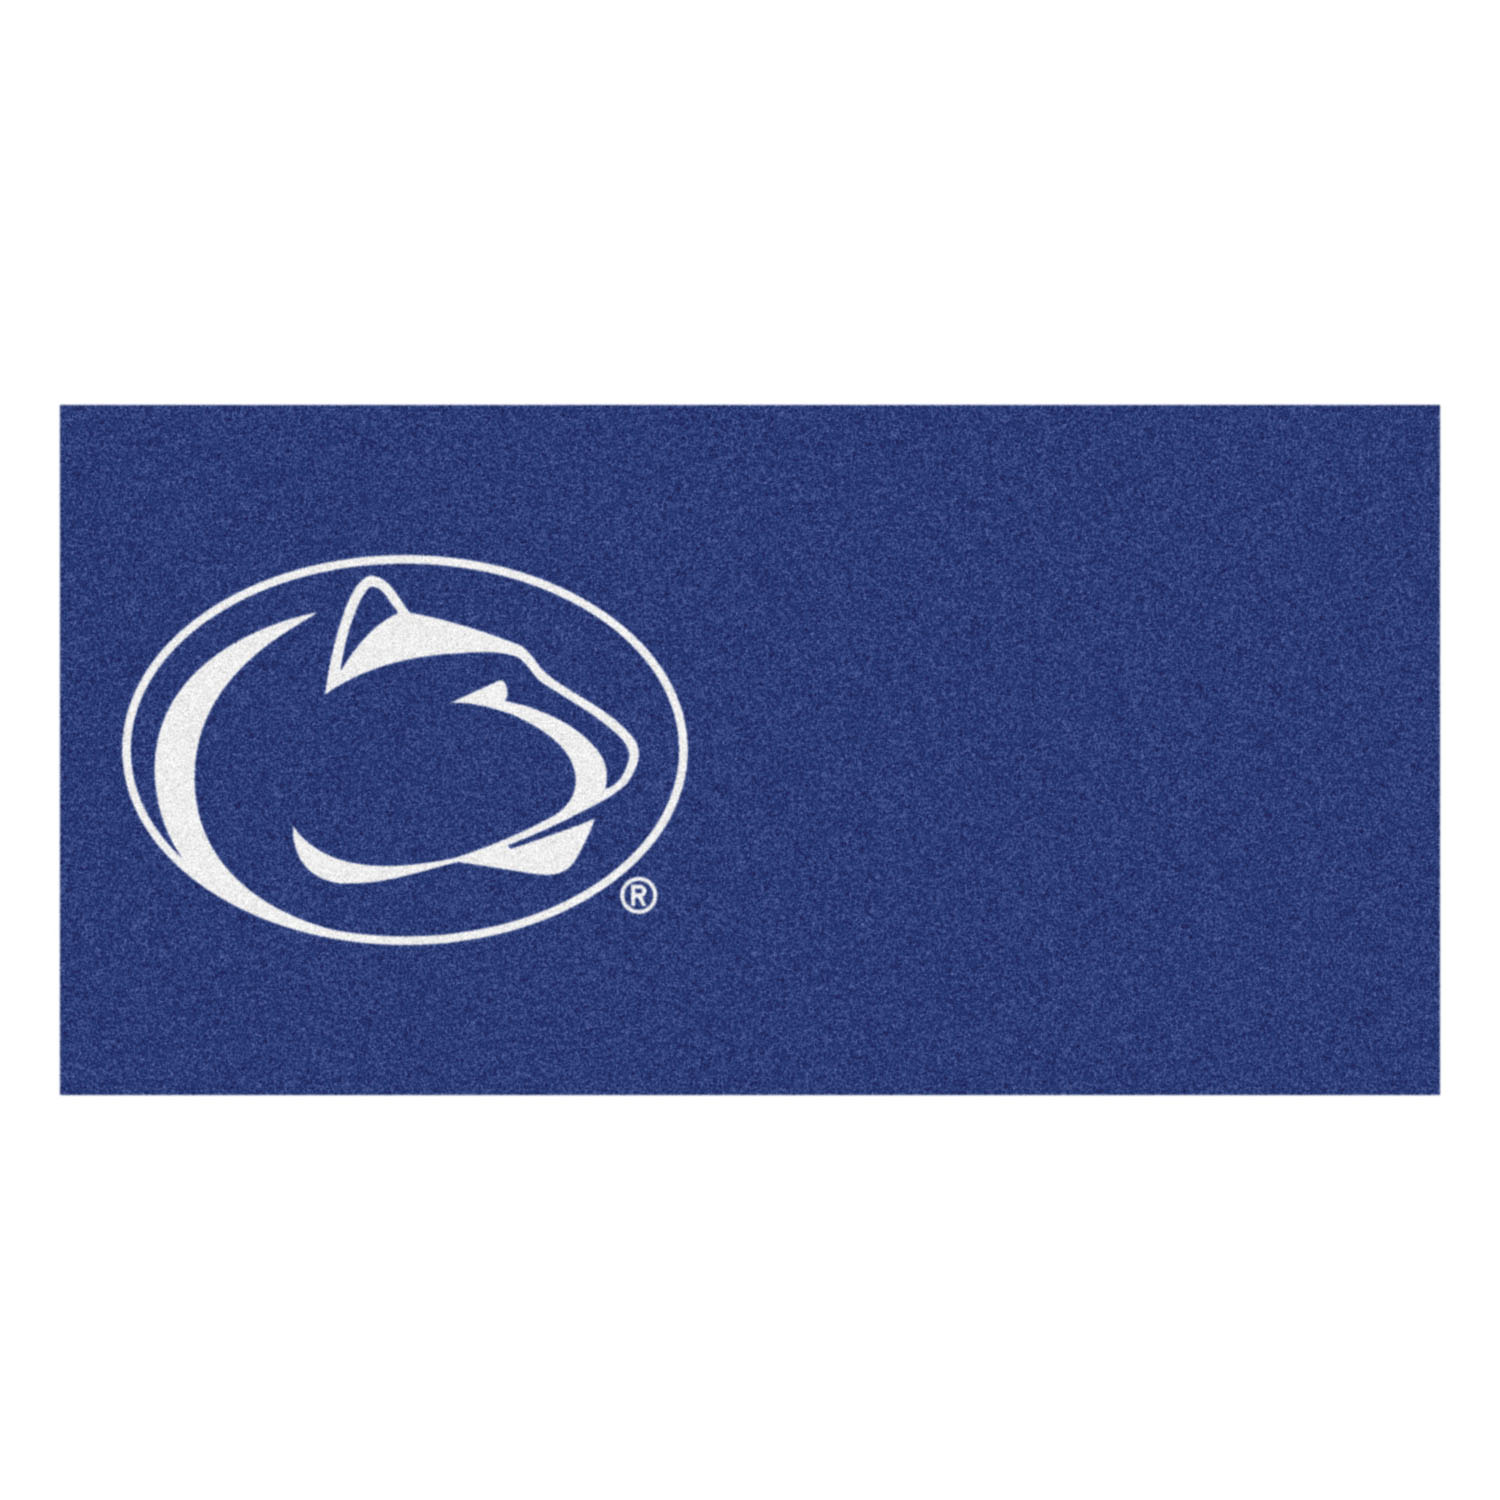 Fanmats Penn State Carpet Tiles 18